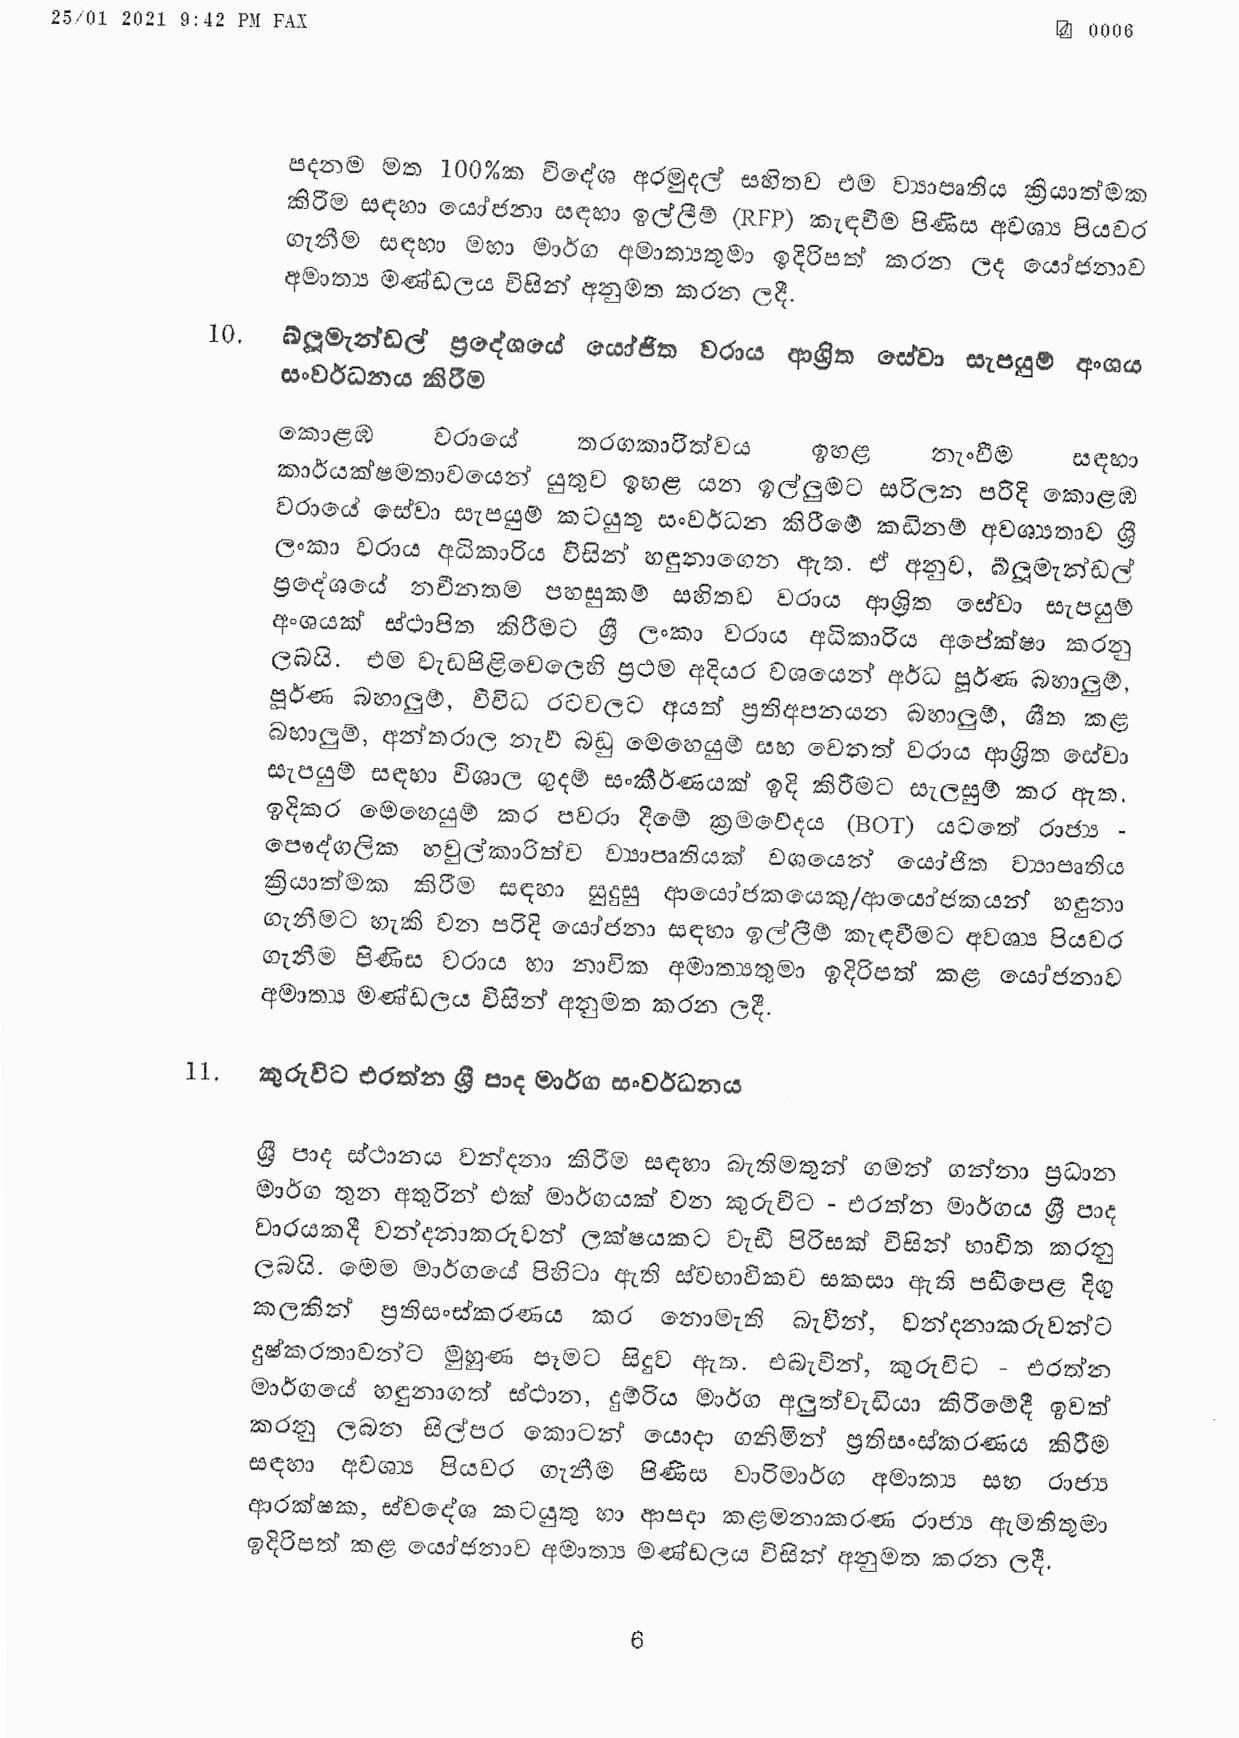 Cabinet Decision on 25.01.2021 page 006